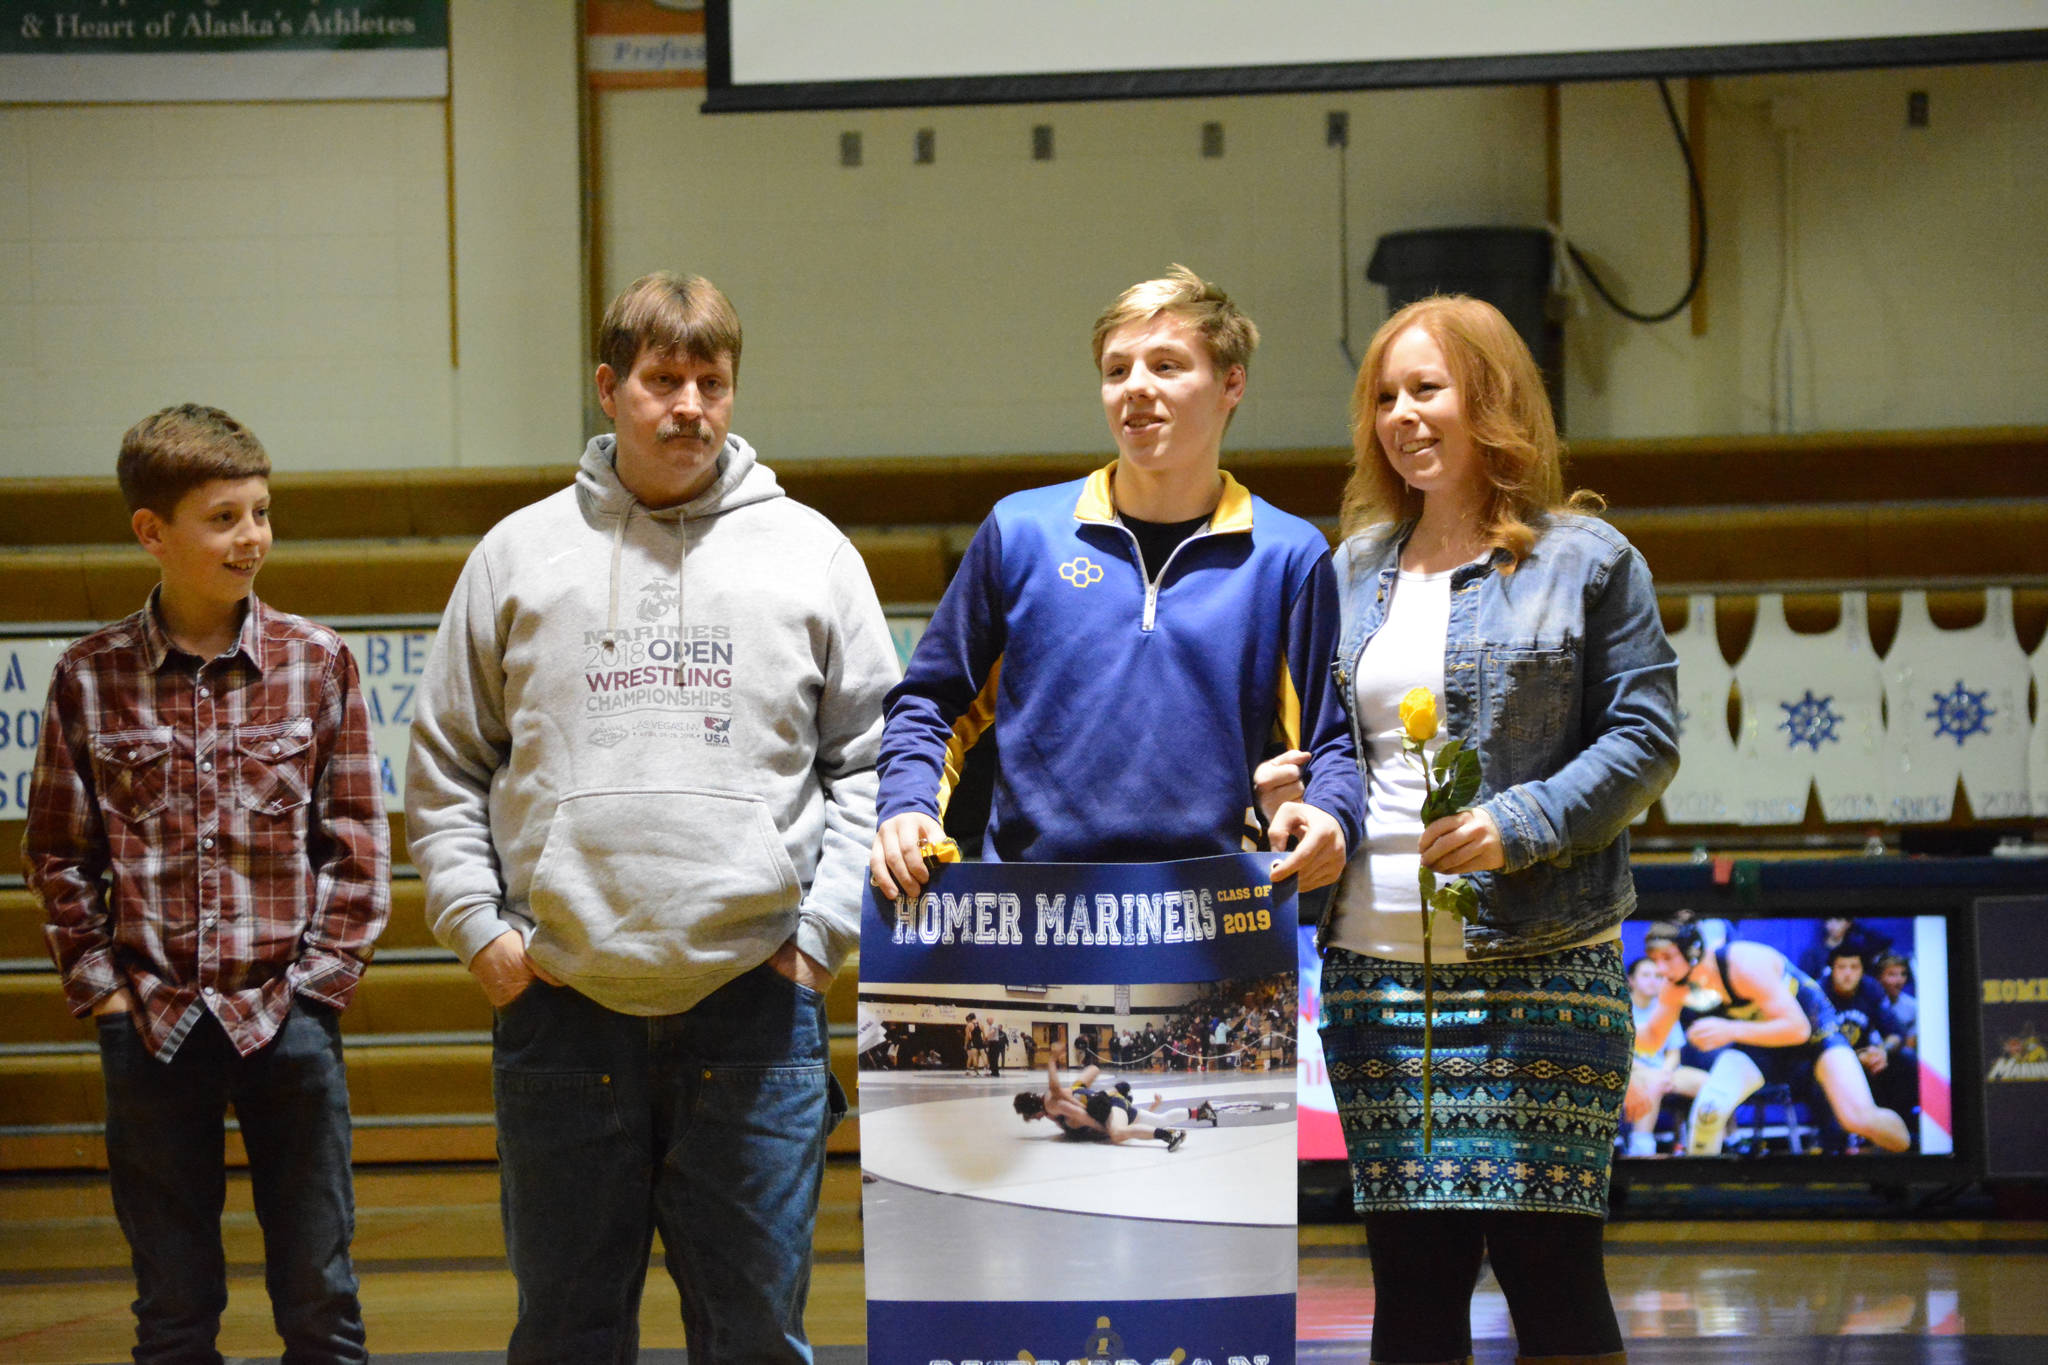 Wayne Newman holds a banner recognizing him at Senior Night, the Homer-Kenai dual wrestling meet held Nov. 21, 2018, in the Homer High School Alice Witte Gym, Homer, Alaska. Supporting him are his parents, Sam and Auriell Newman, and brother, ??? Newman. (Photo by Michael Armstrong/Homer News)